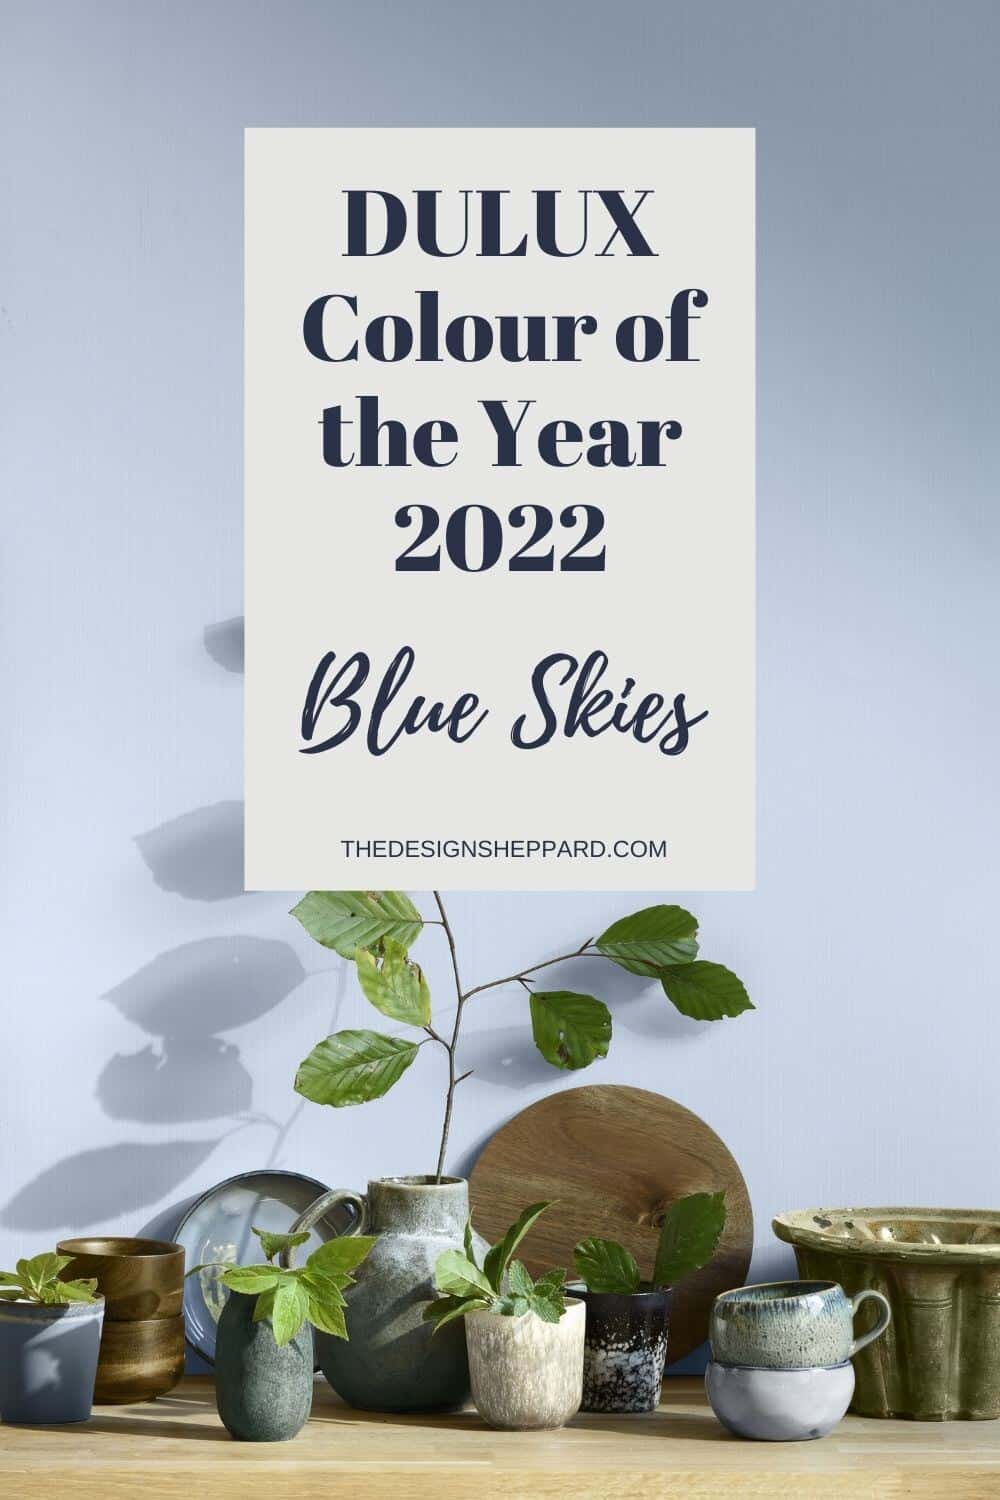 Pinterest Pin Dulux Colour of the Year 2022 Bright Skies